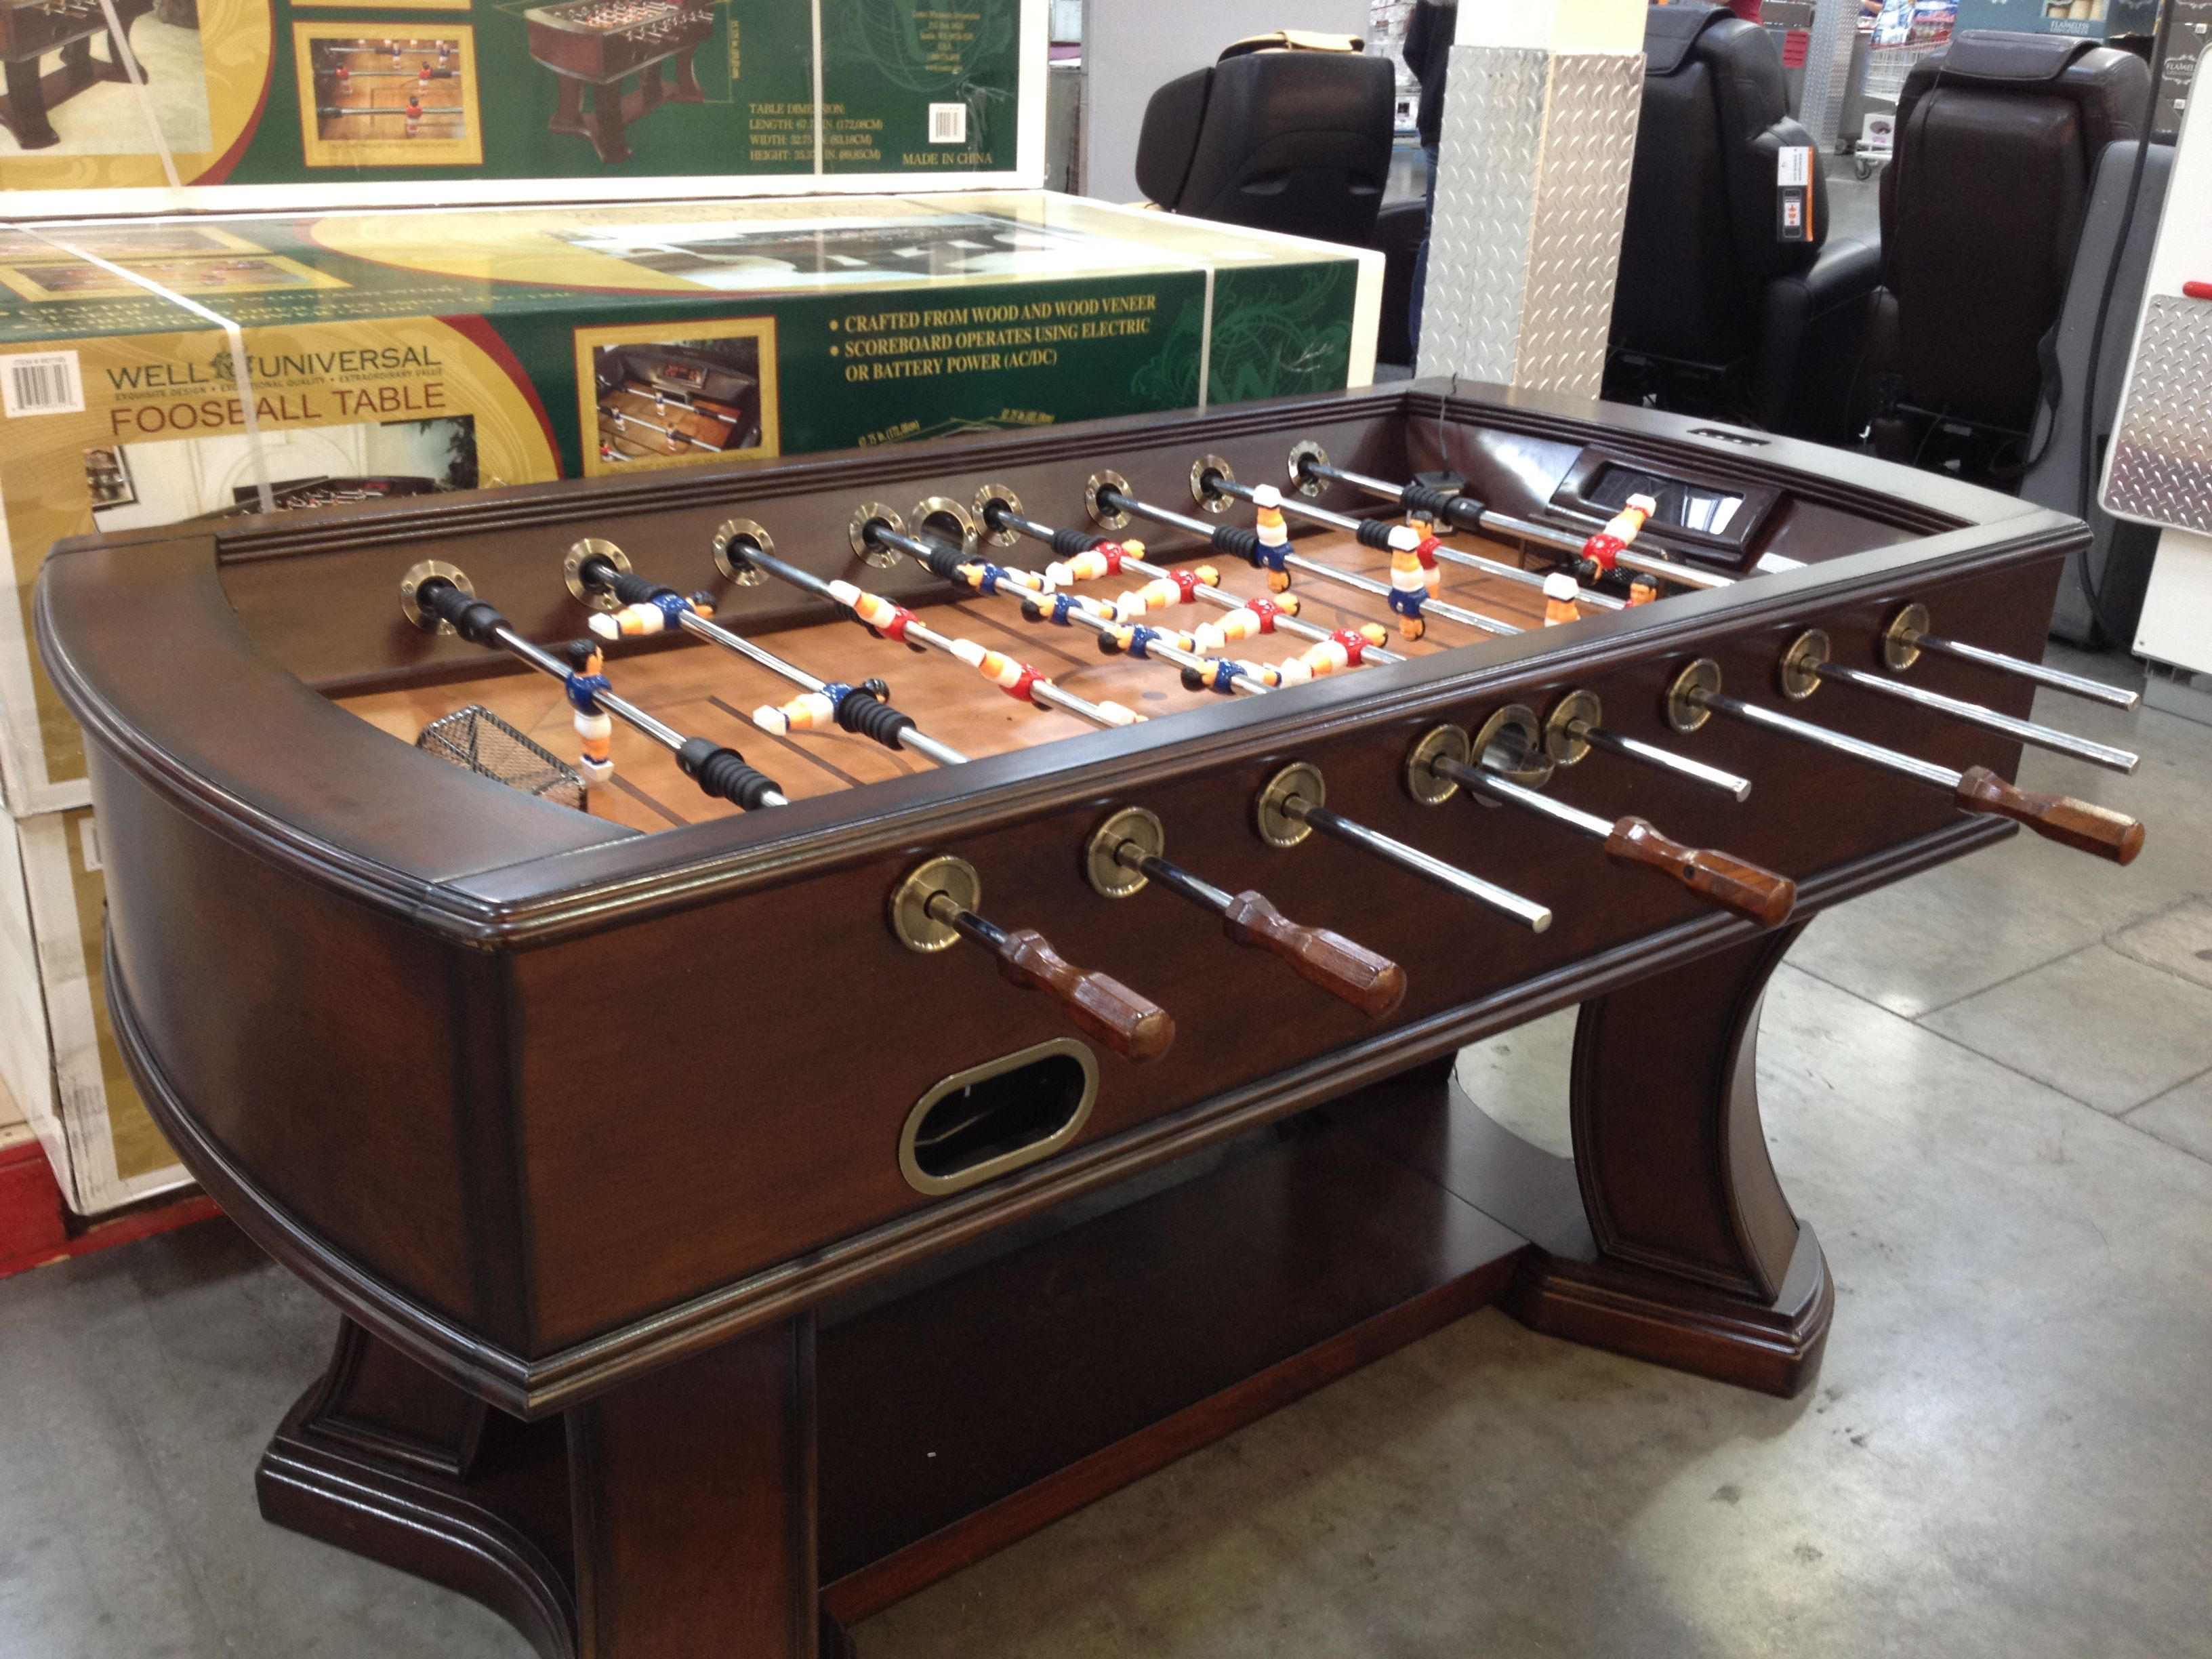 Foosball Table With Electronic Scoring 450 At Costco Foosball